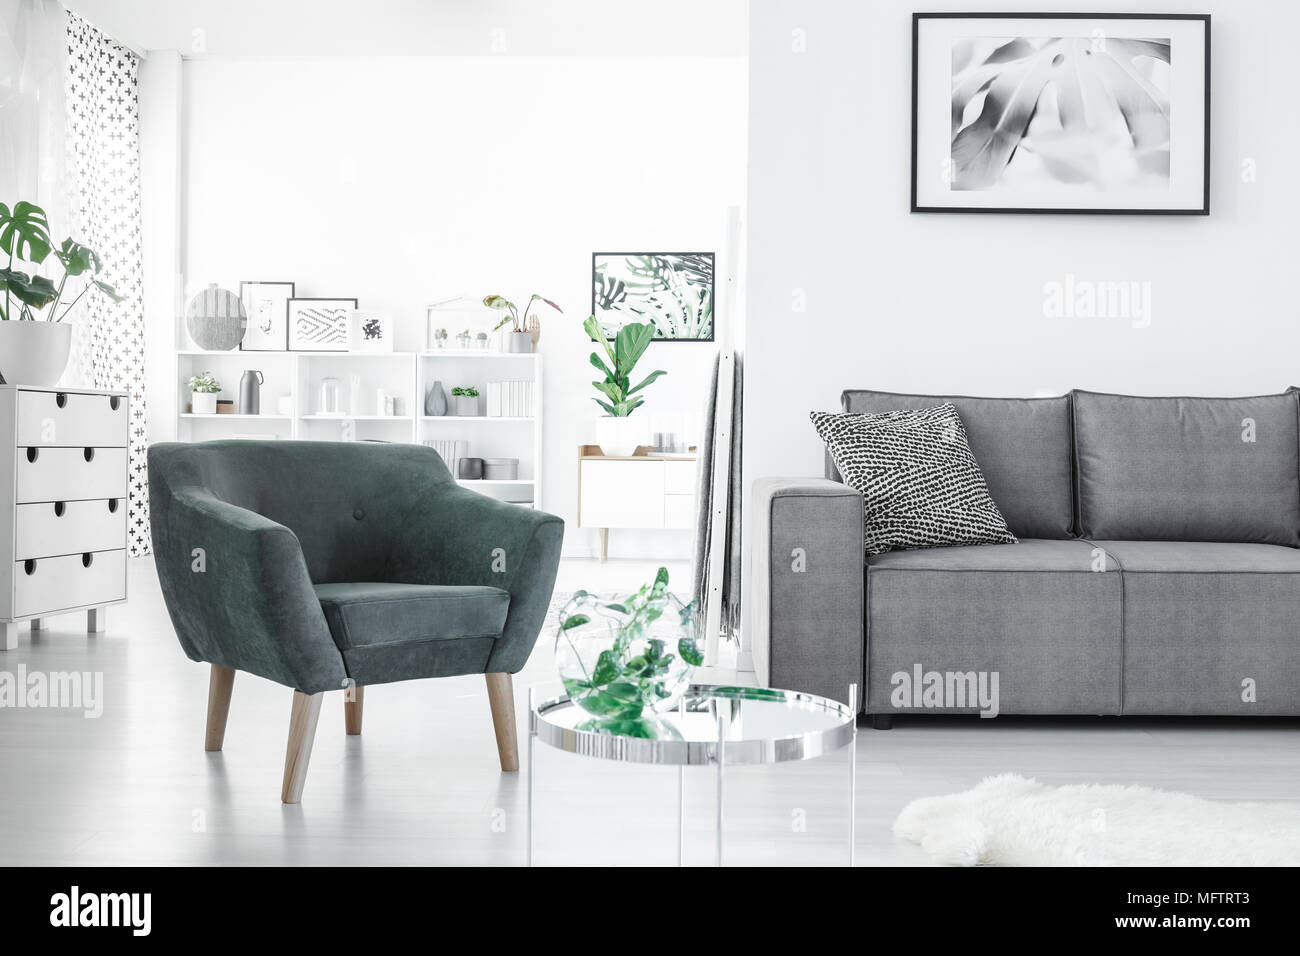 https www alamy com open space white living room interior with fresh plants posters grey couch and green armchair image181869075 html